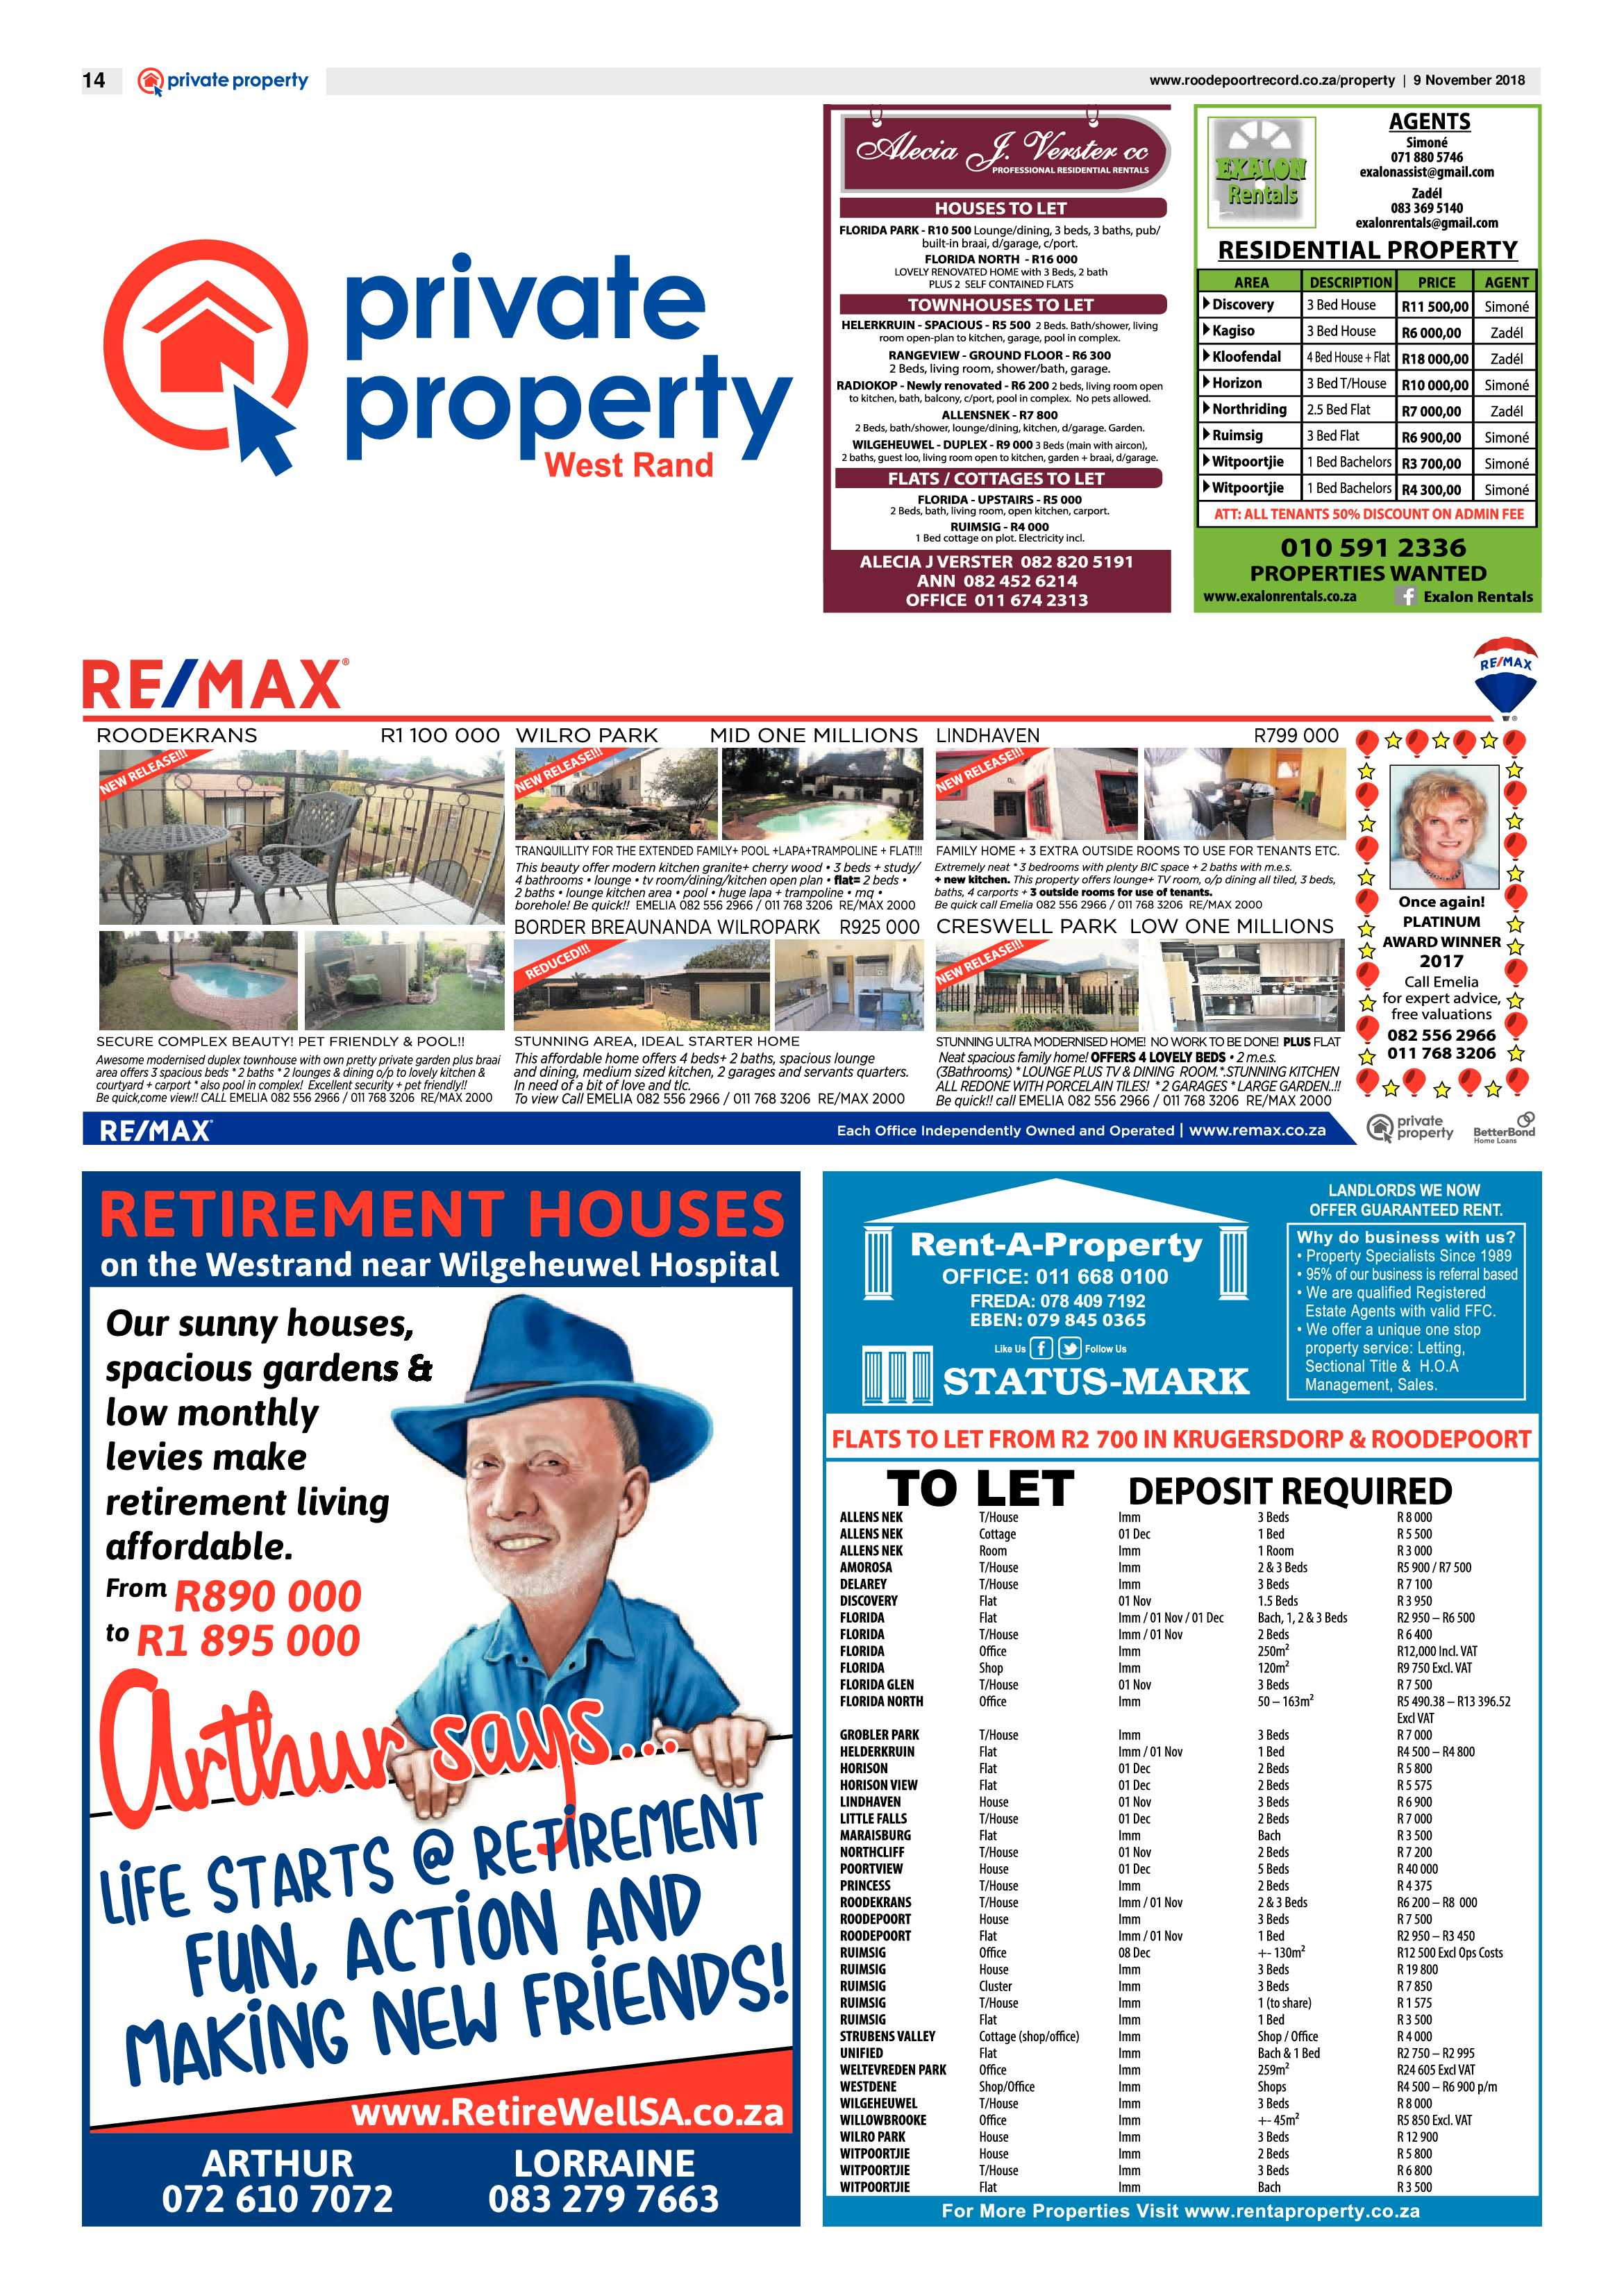 roodepoort-record-9-november-2018-epapers-page-14